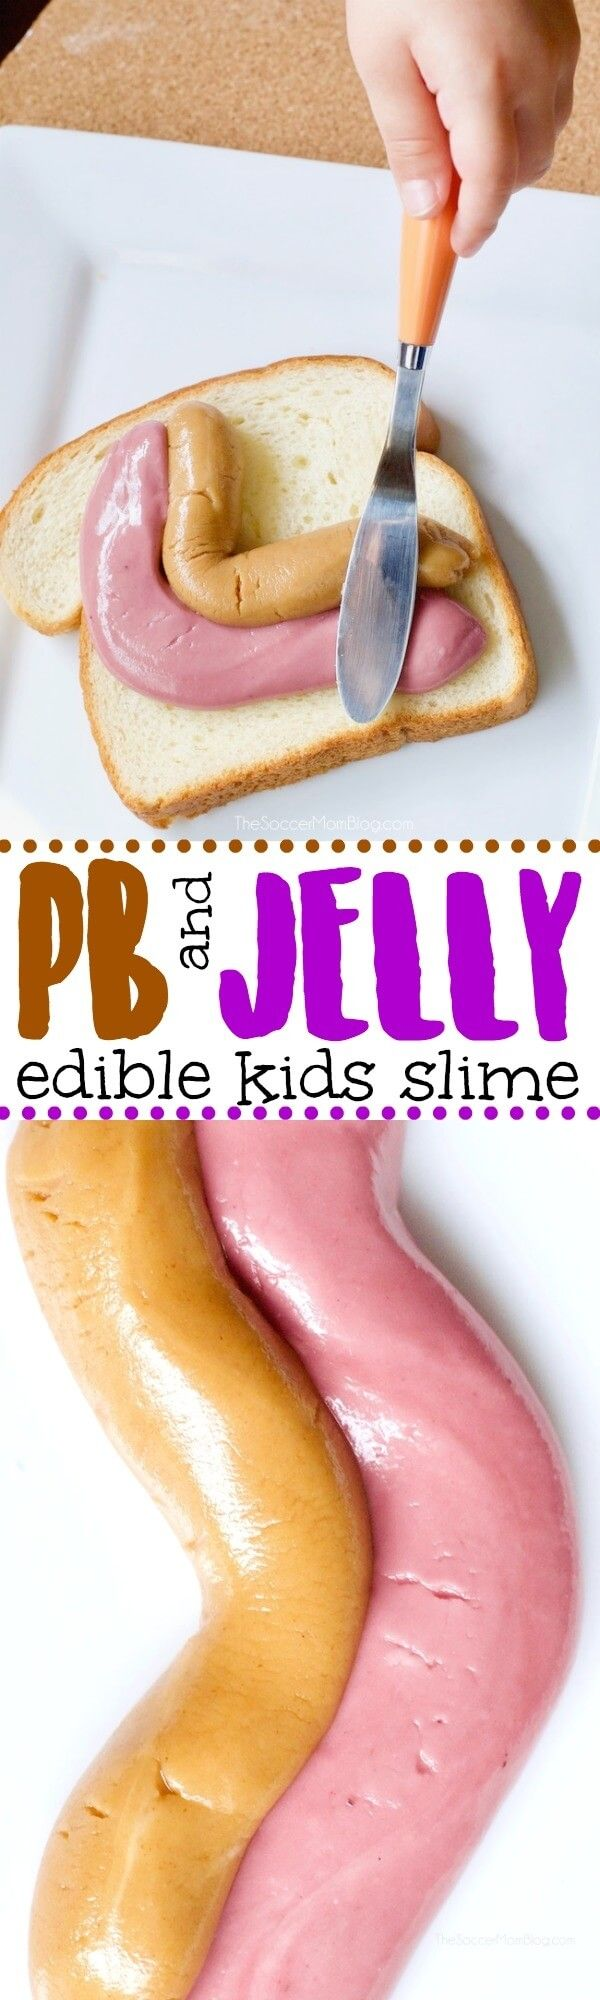 A childhood lunch classic, transformed into hours of squishy sensory play— kids will love this NEW Peanut Butter & Jelly Edible Slime recipe! #slime via @soccermomblog